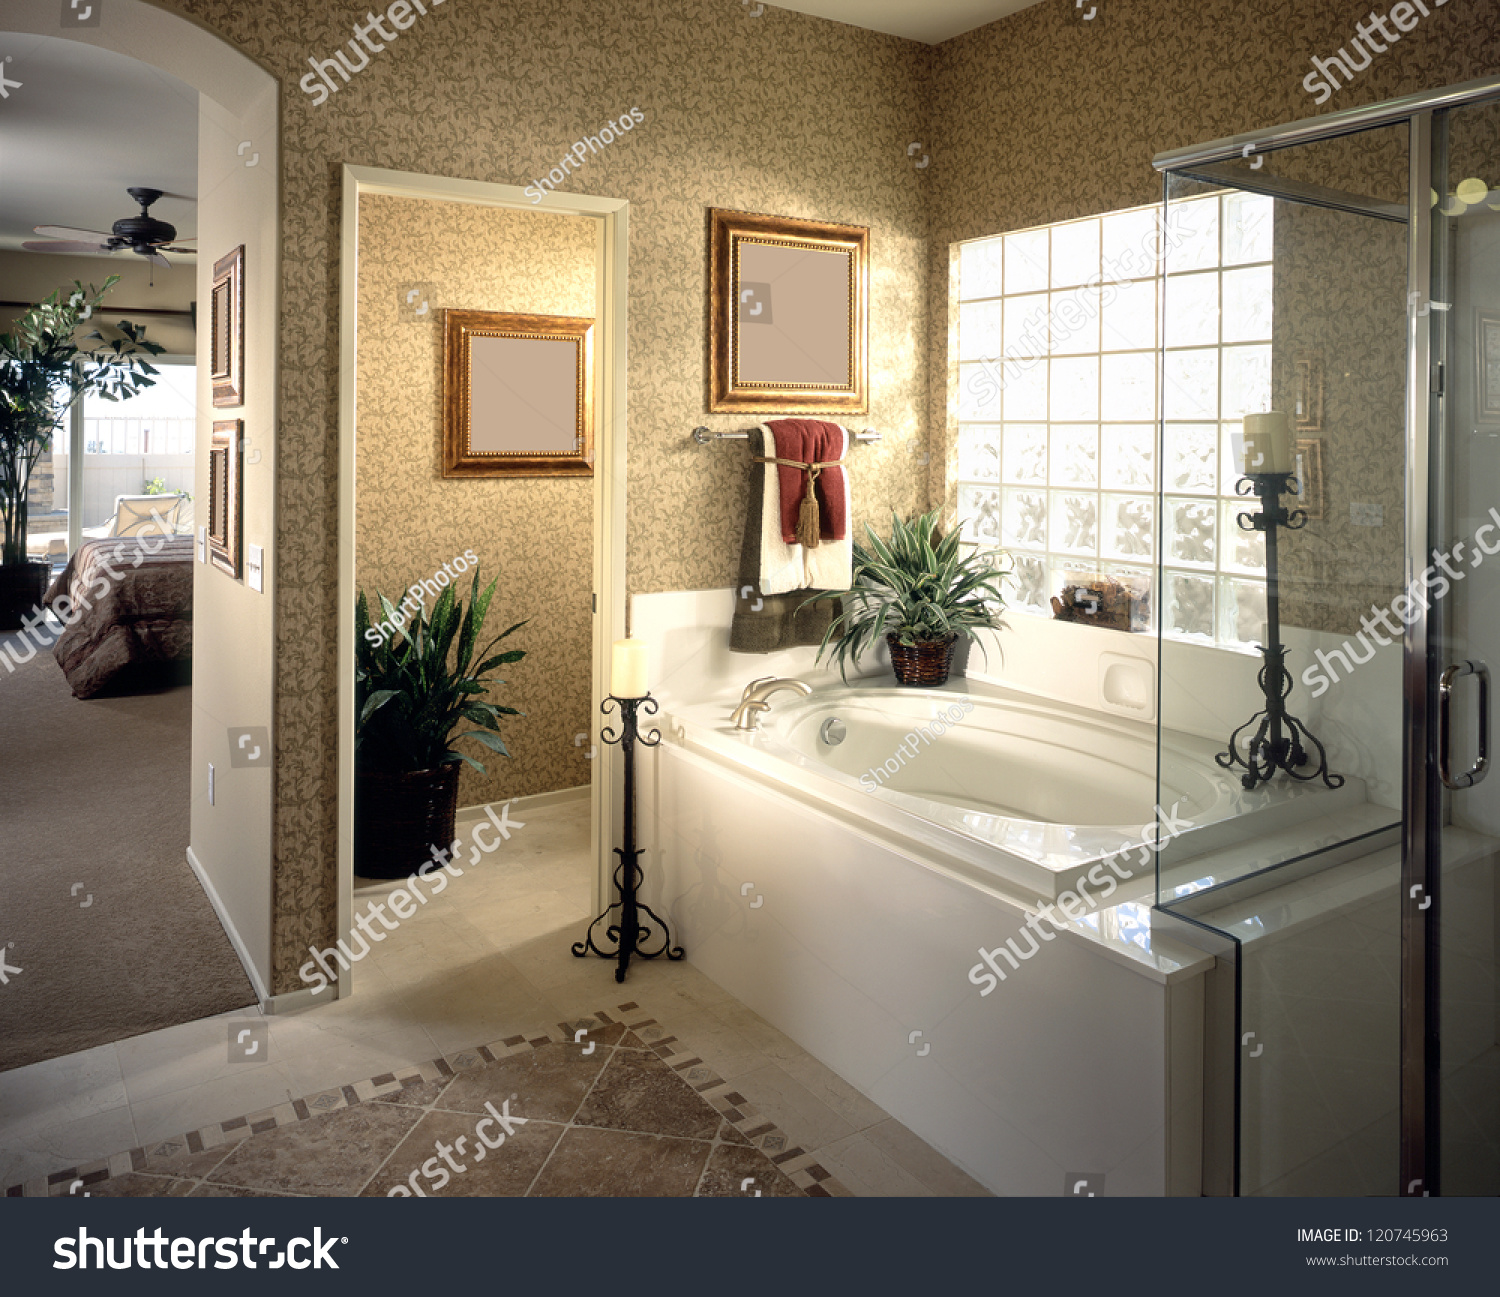 Nice Bathroom Architecture Stock ImagesPhotos Of Living Room KitchenBed